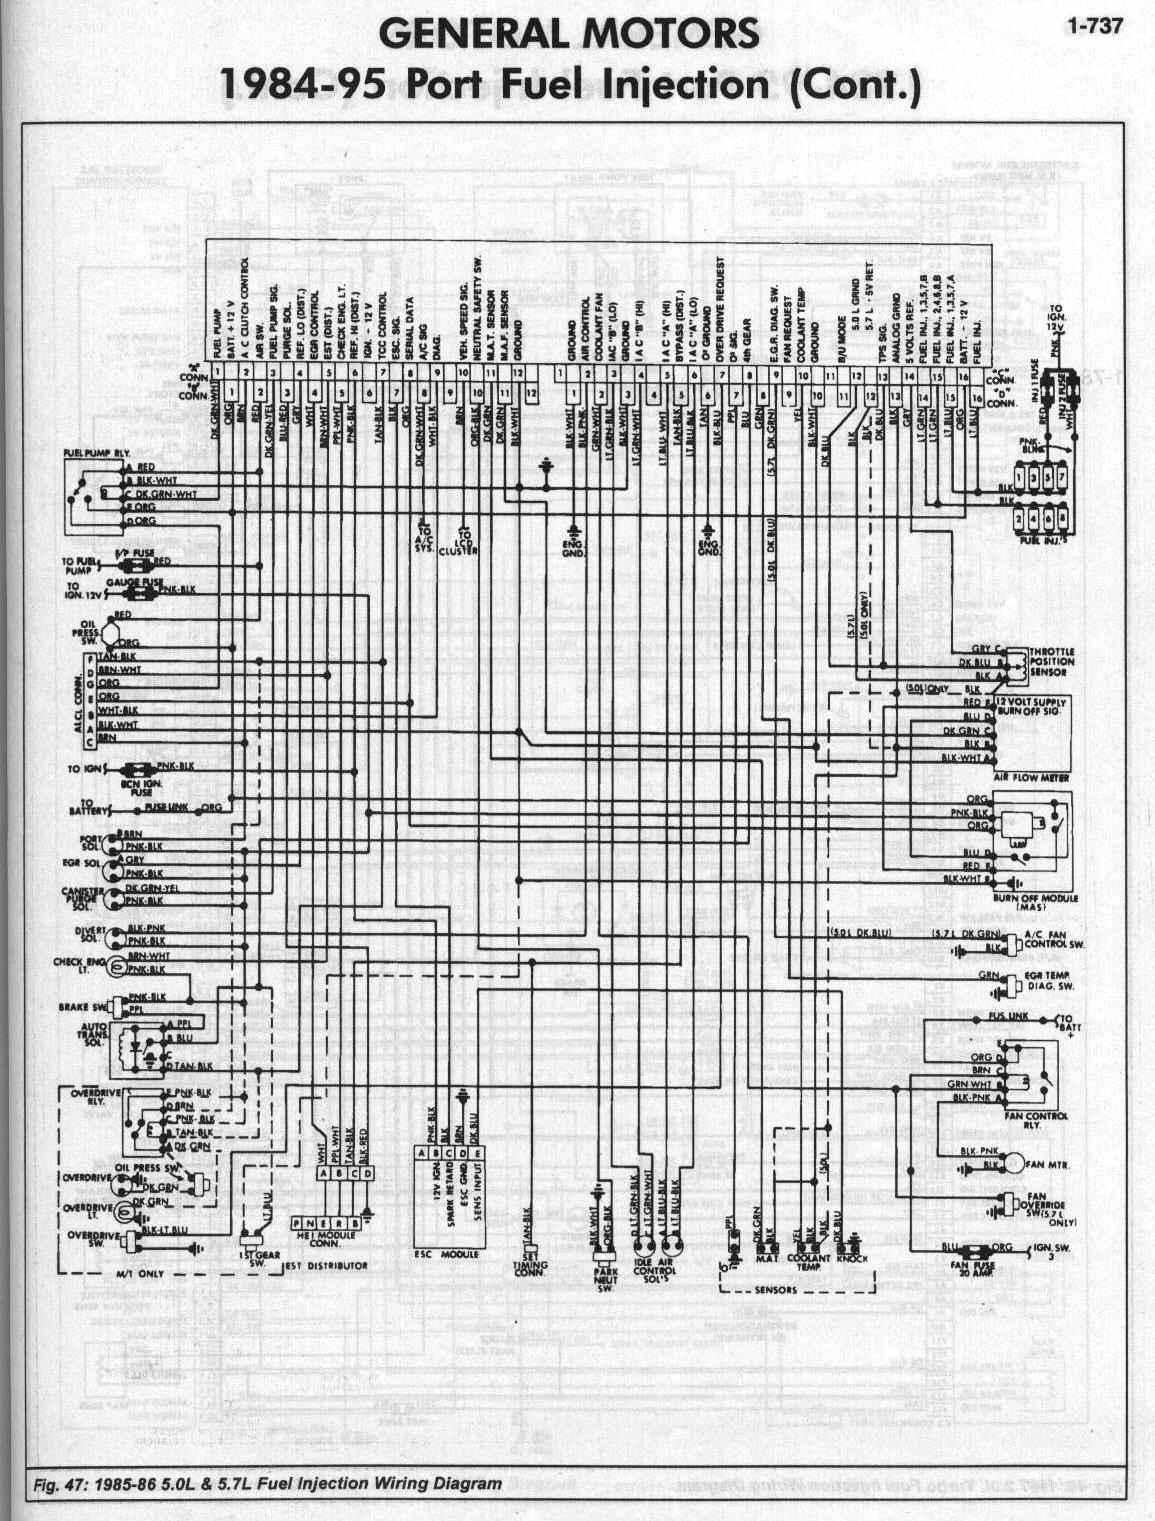 82 el camino ecm electrical diagram wiring diagram database1985 camaro wiring diagram wiring diagram library 1970 el camino interior 82 el camino ecm electrical diagram